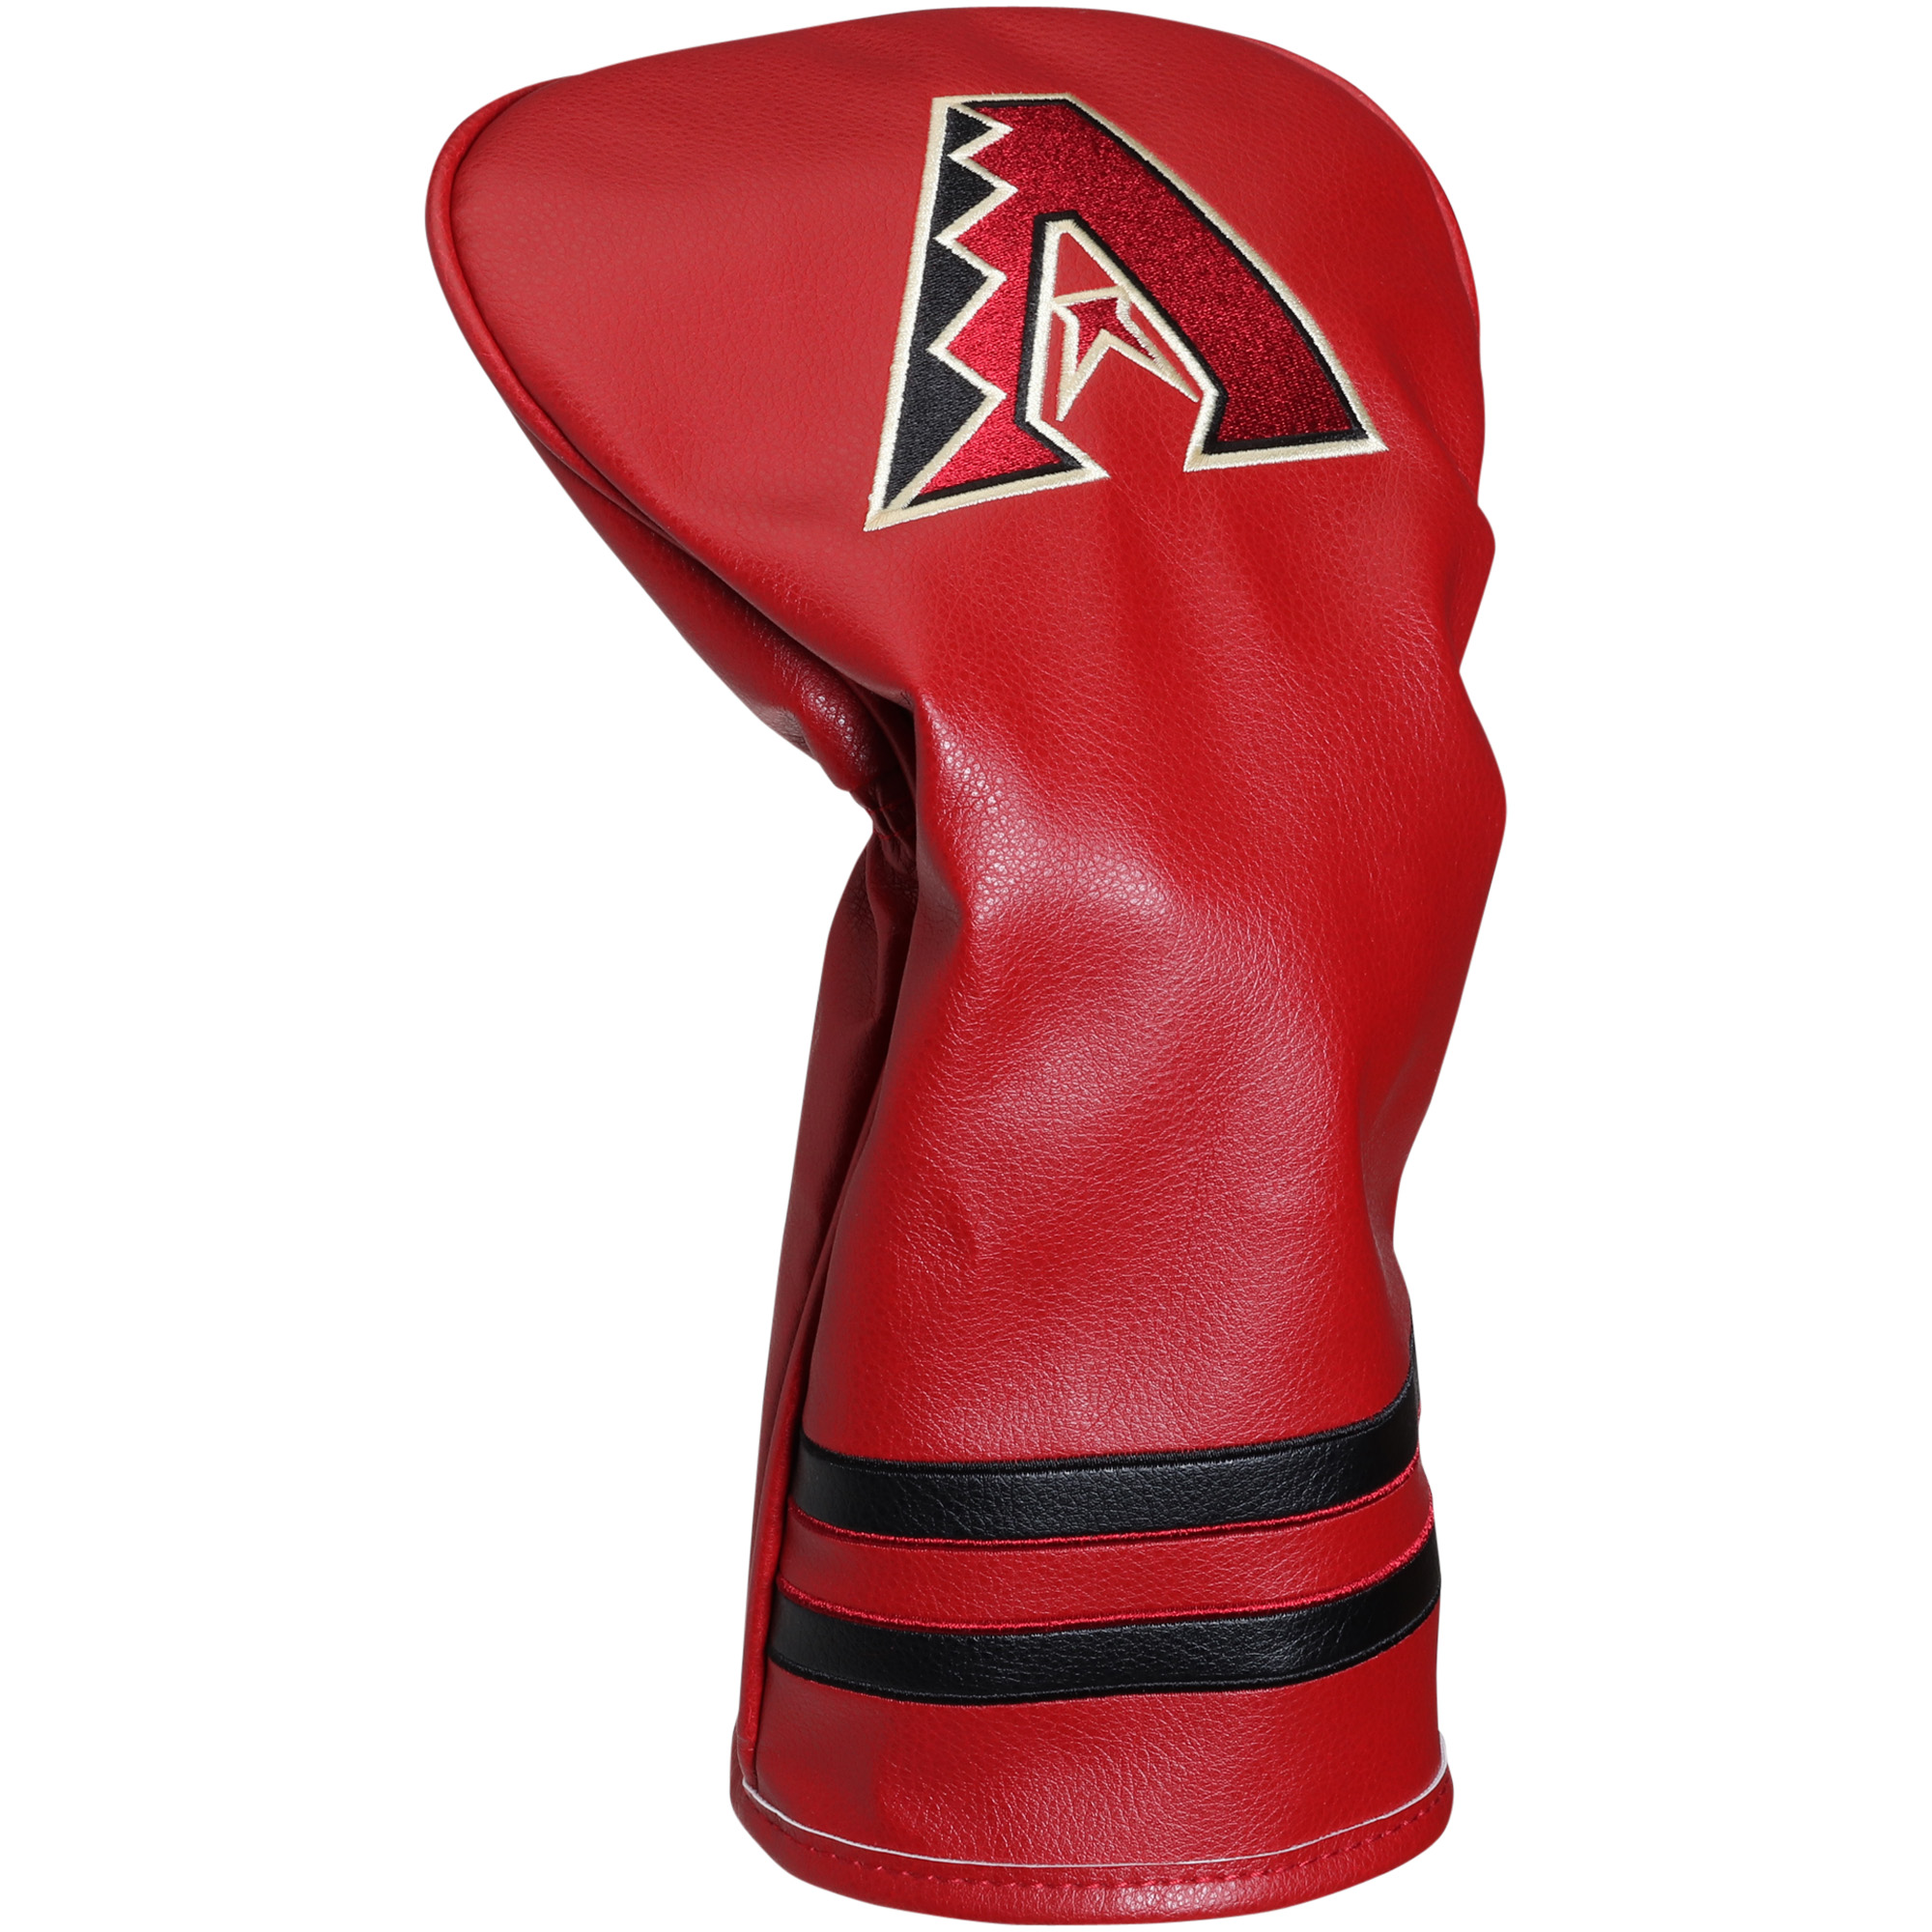 Arizona Diamondbacks Vintage Single Headcover - No Size